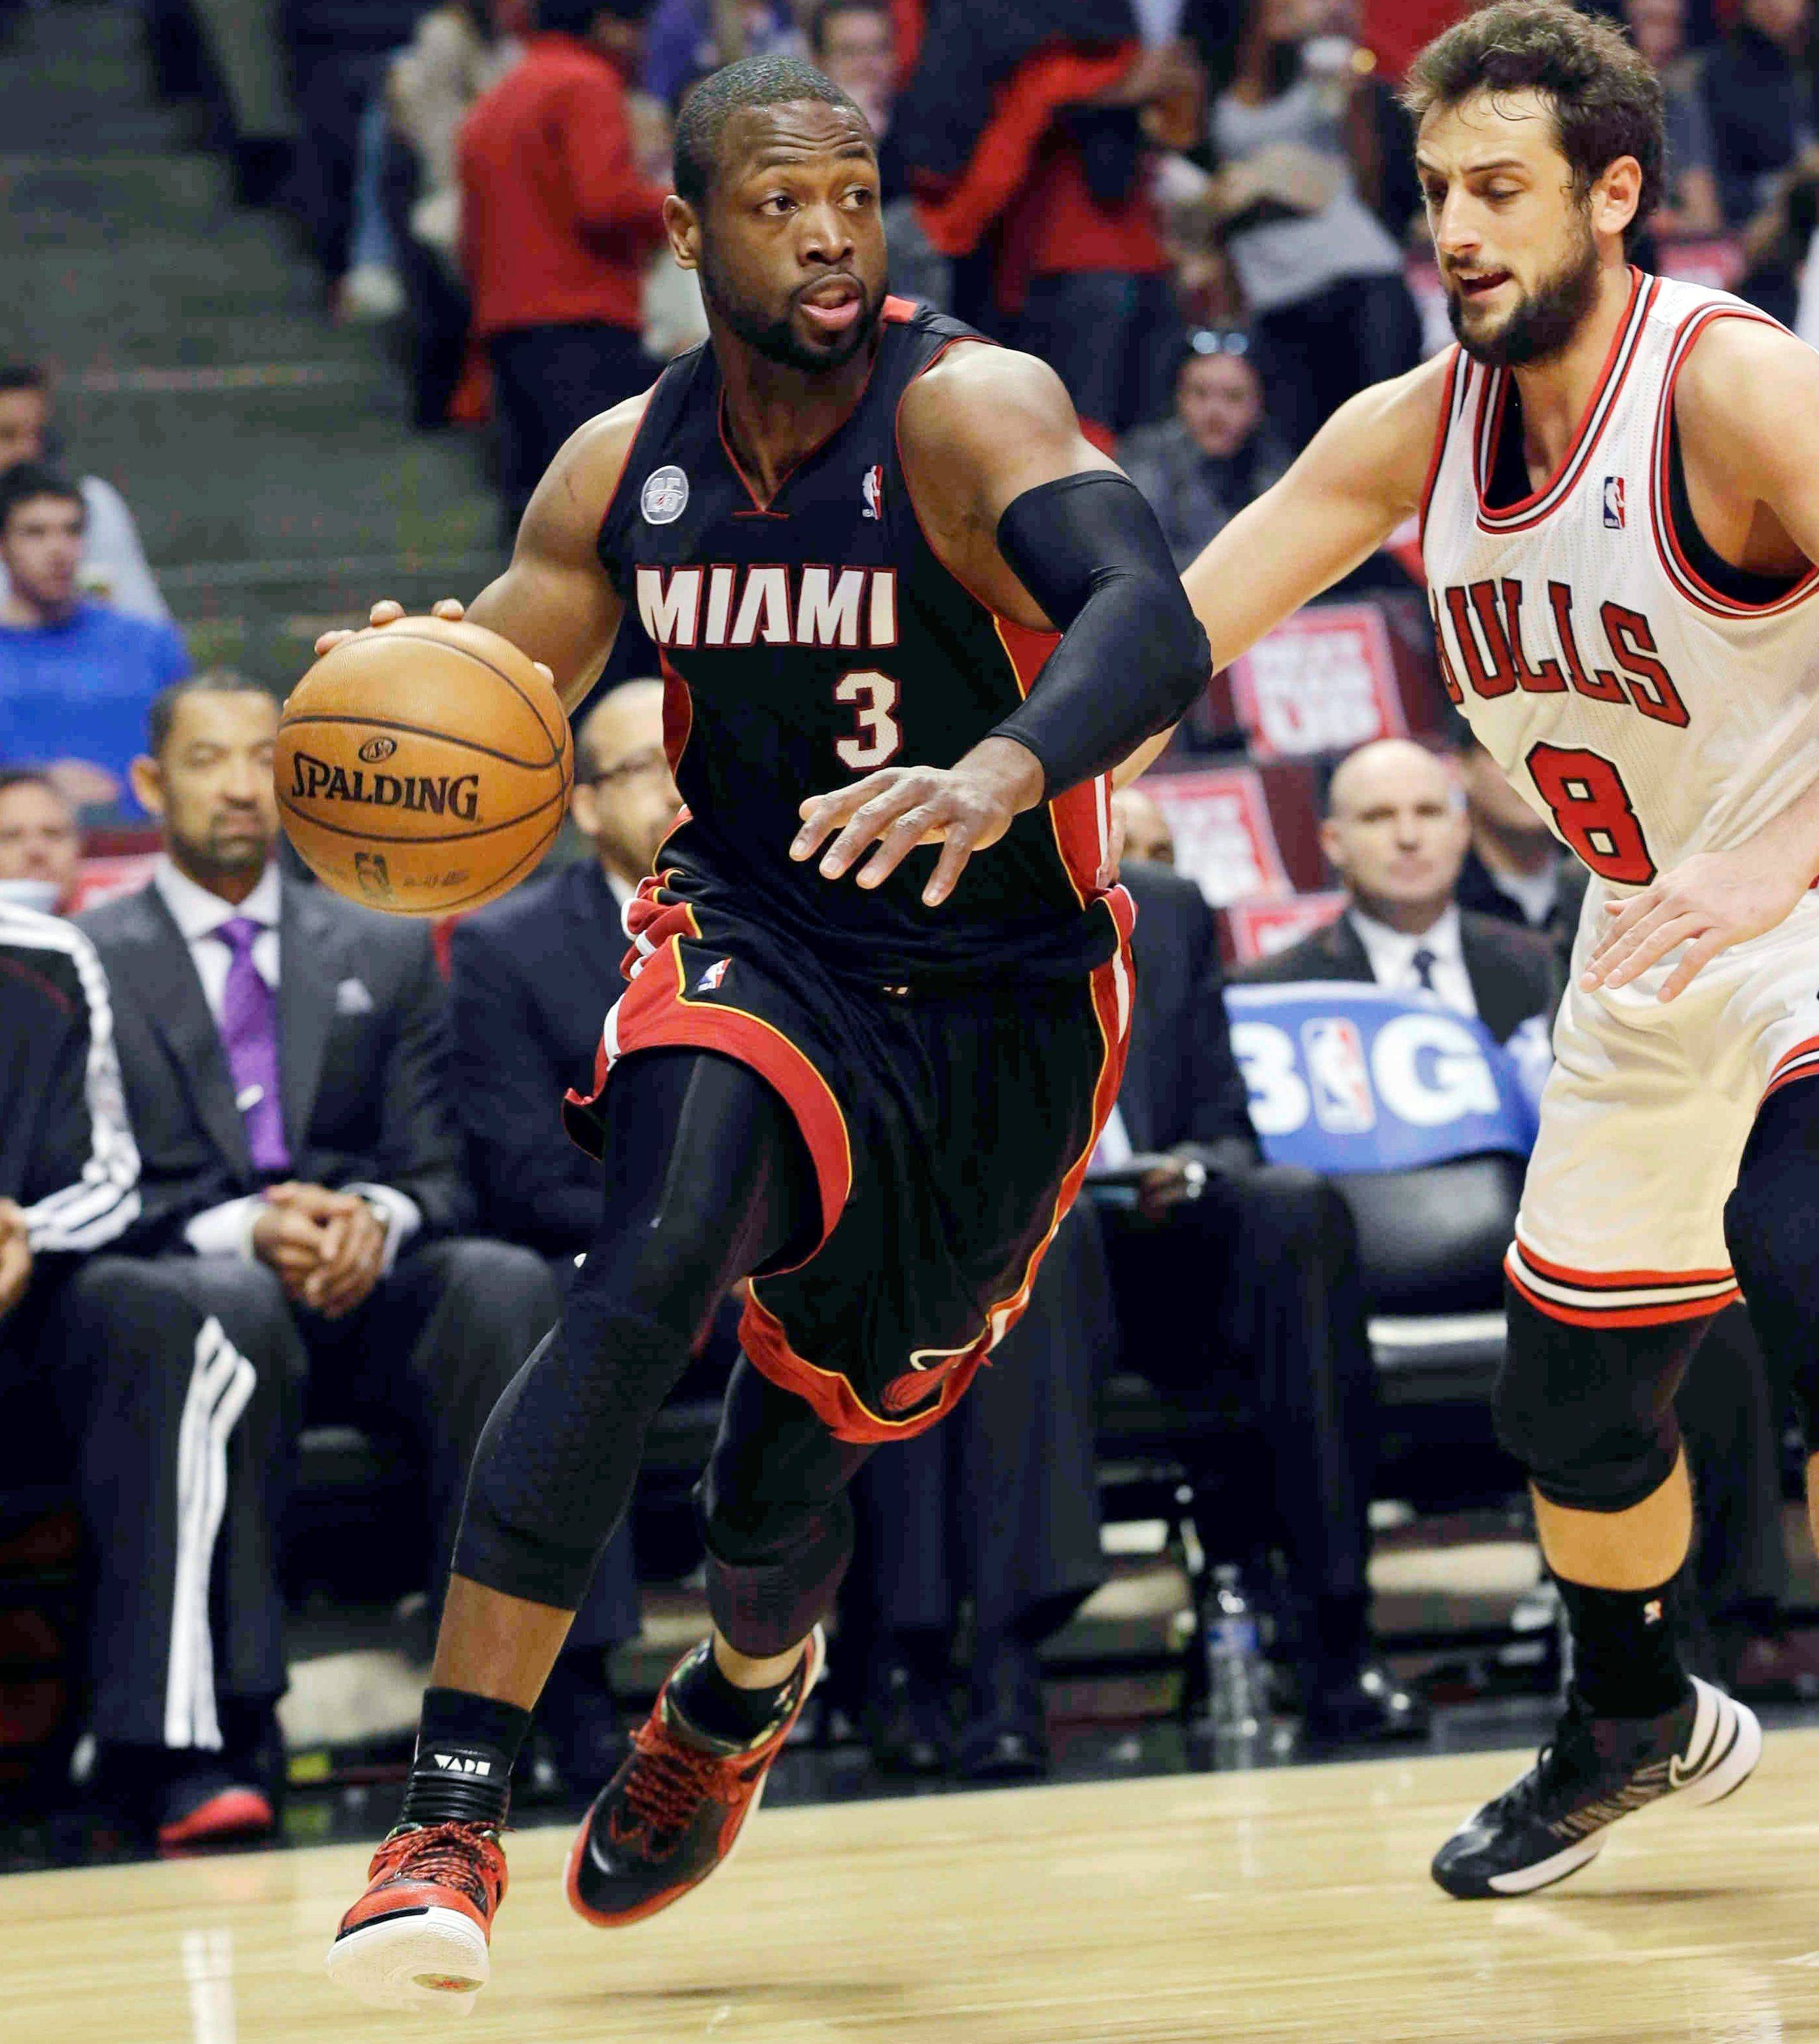 Dwyane Wade drives against Marco Belinelli (8) during the first half of Game 4 of the Eastern Conference semifinals. Wade has been battling bone bruises on his right knee for weeks and could sit out Game 5 tonight.